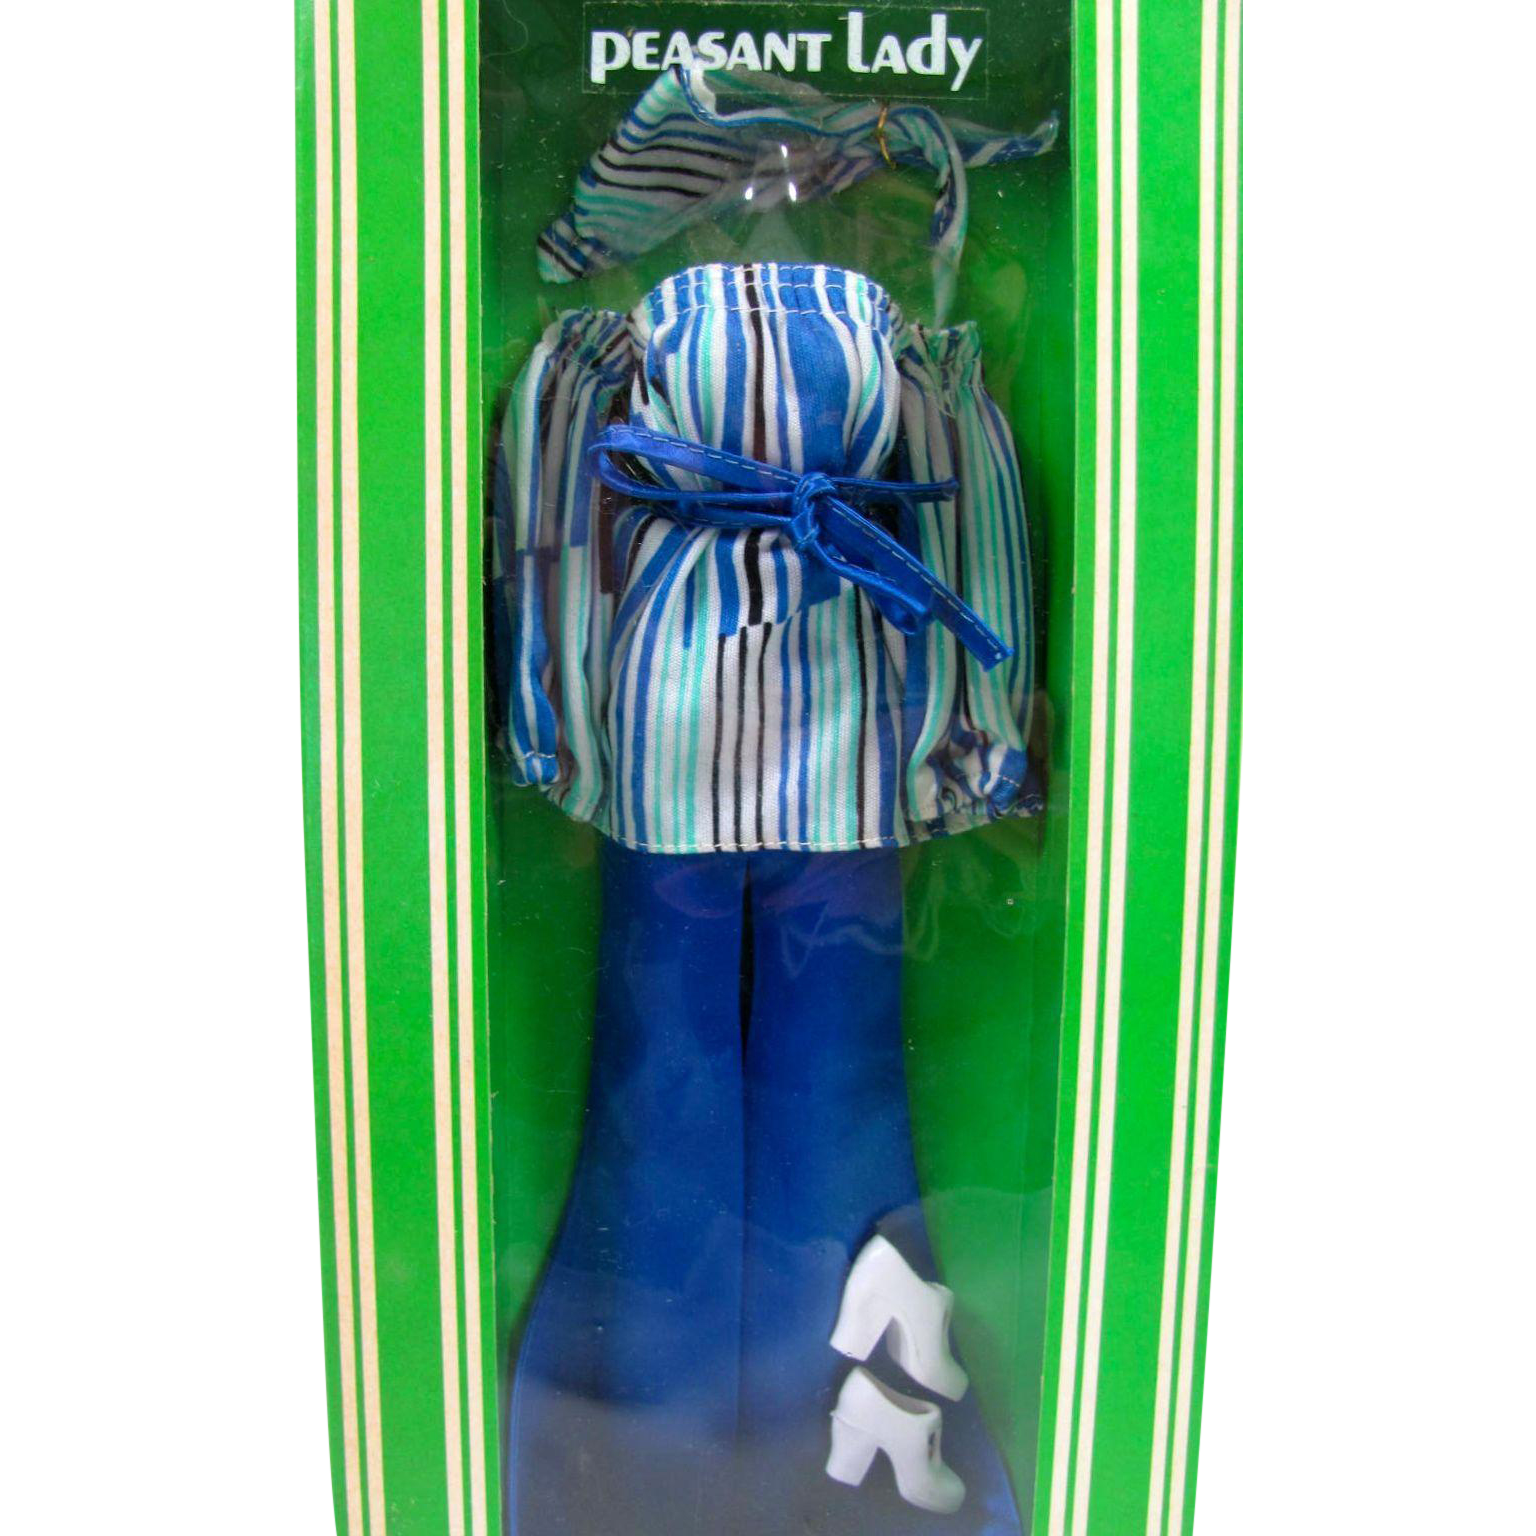 Peasant Lady Fashion, Cher Doll Clothes, Mint In Box, Bob Mackie, Mego, Vintage 1976